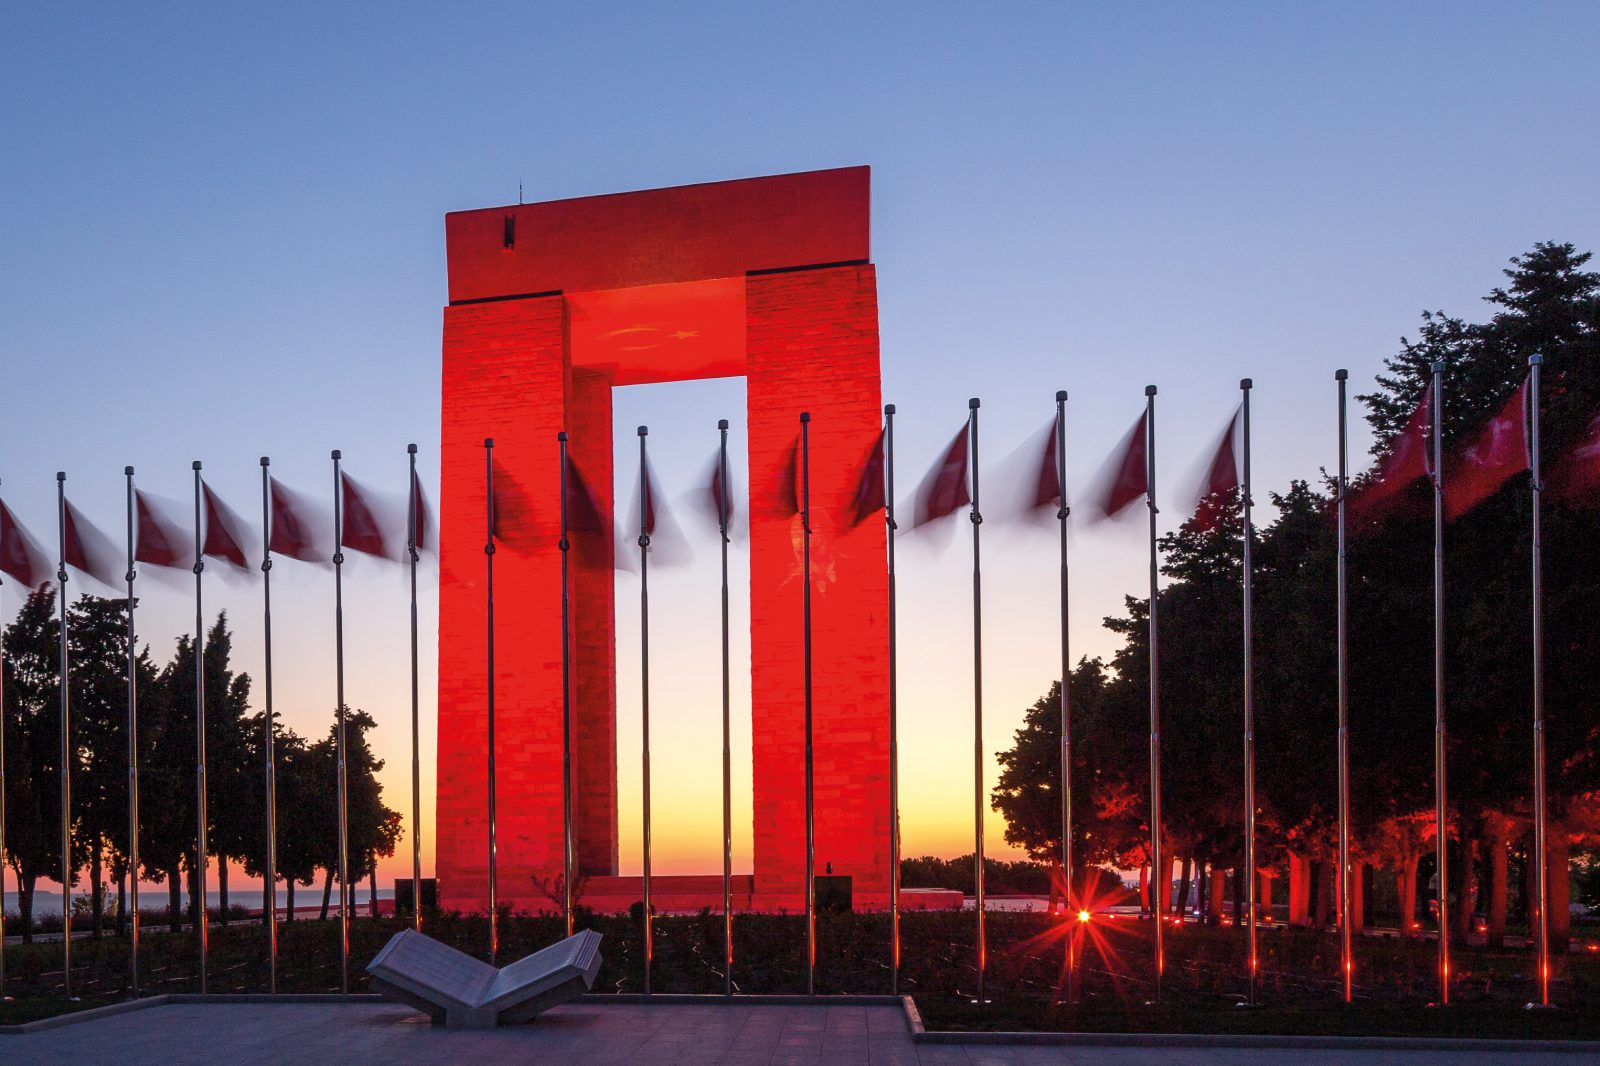 The sunset illuminates the Turkish Martyrs' Memorial at Şehitler Abidesi, near Morto Bay at the southern end of the Gallipoli Peninsula. It commemorates the service of the quarter of a million Turks who took part in the battle in 1915, and is one of the powerful reminders to foreign visitors that there is another side to the Anzac story.